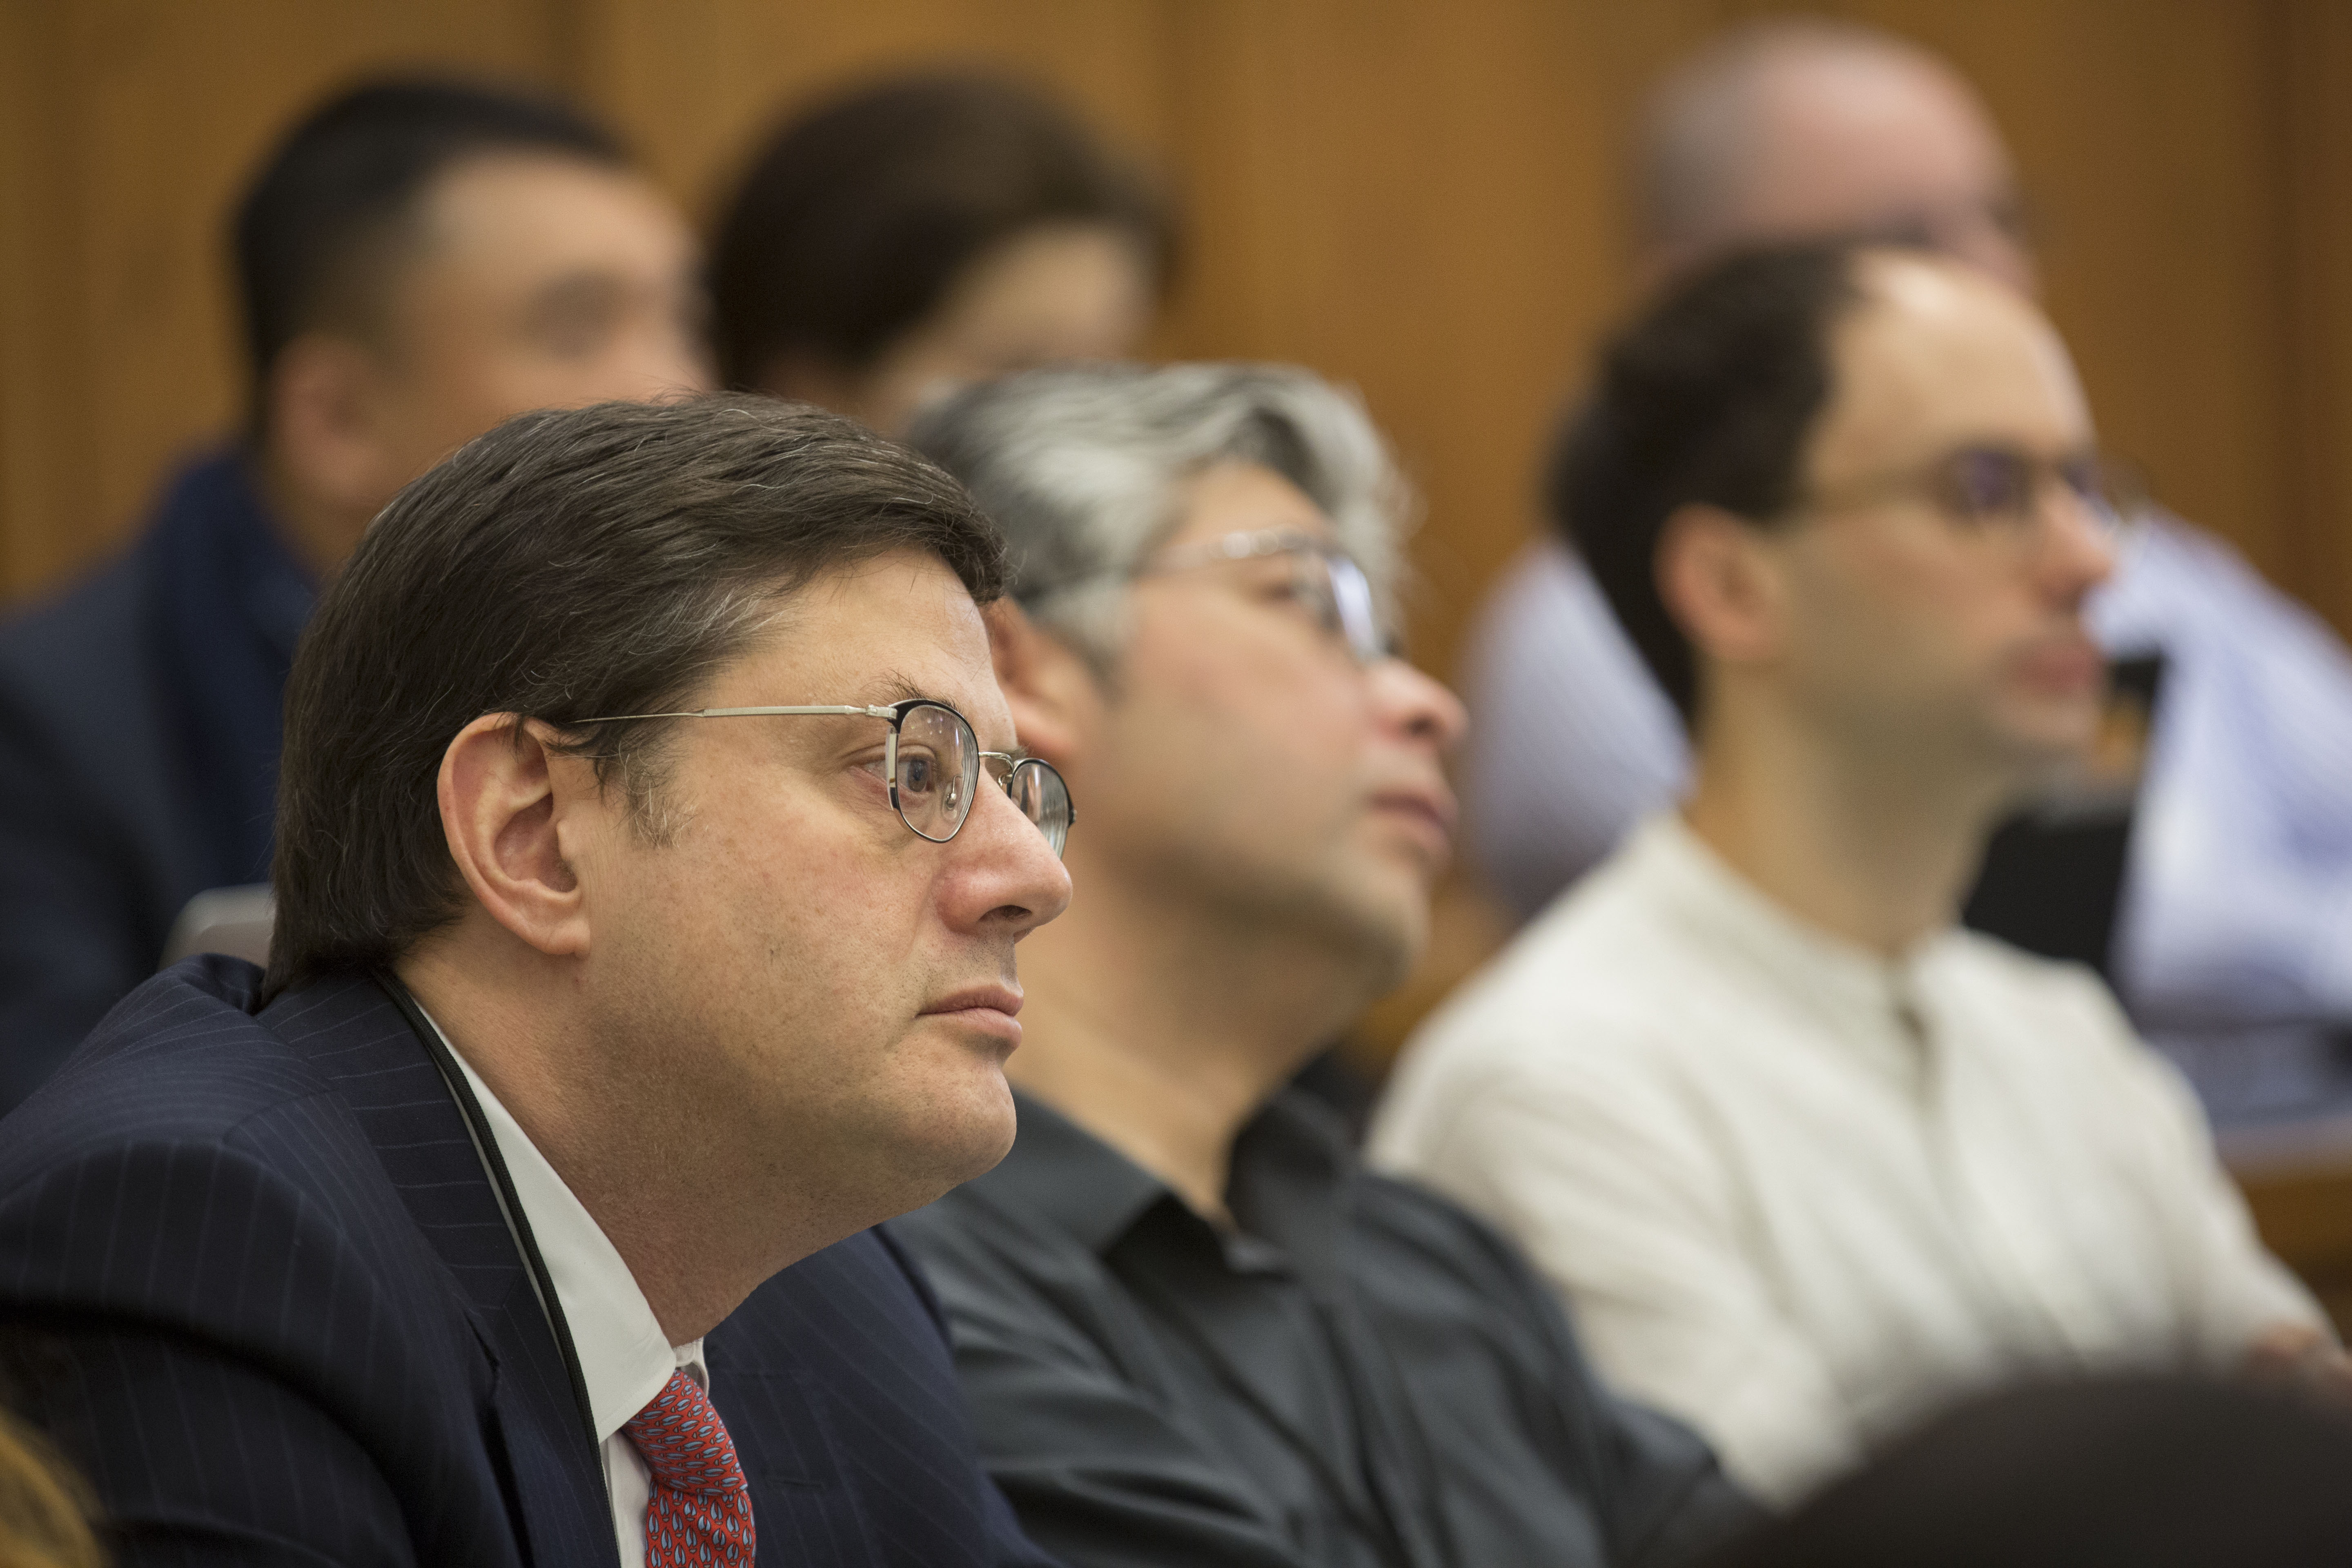 Stewart Kagan '85 (foreground)